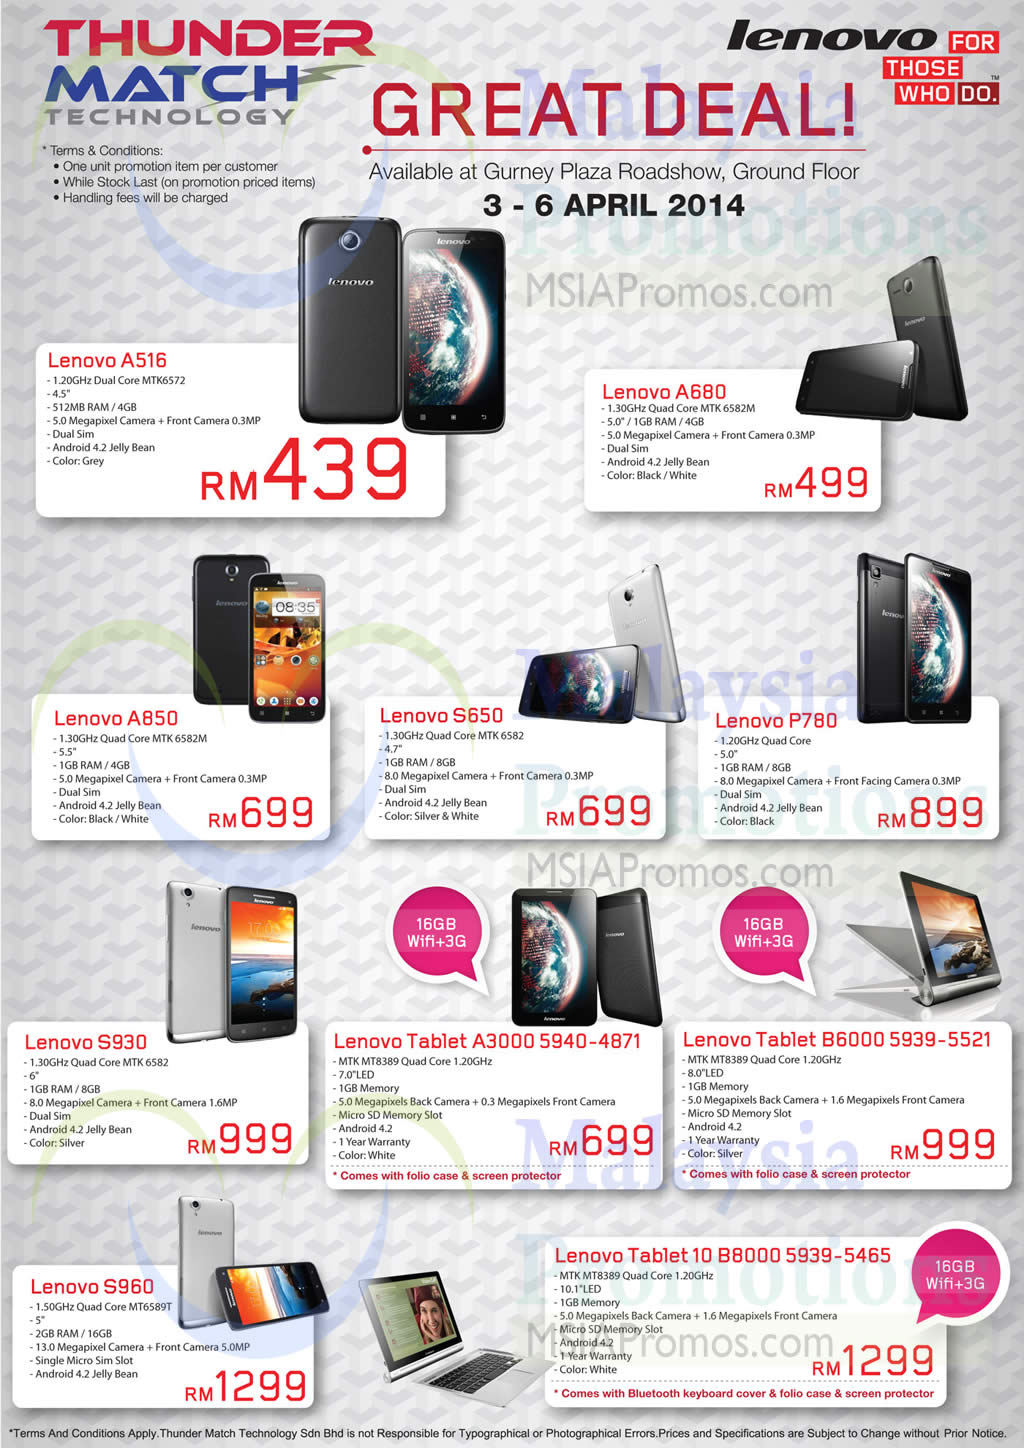 Lenovo Mobile Phones Tablets A516 A680 A850 S650 P780 S930 Android Quadcore S960 A3000 5940 4871 B6000 5939 5521 10 B8000 5465